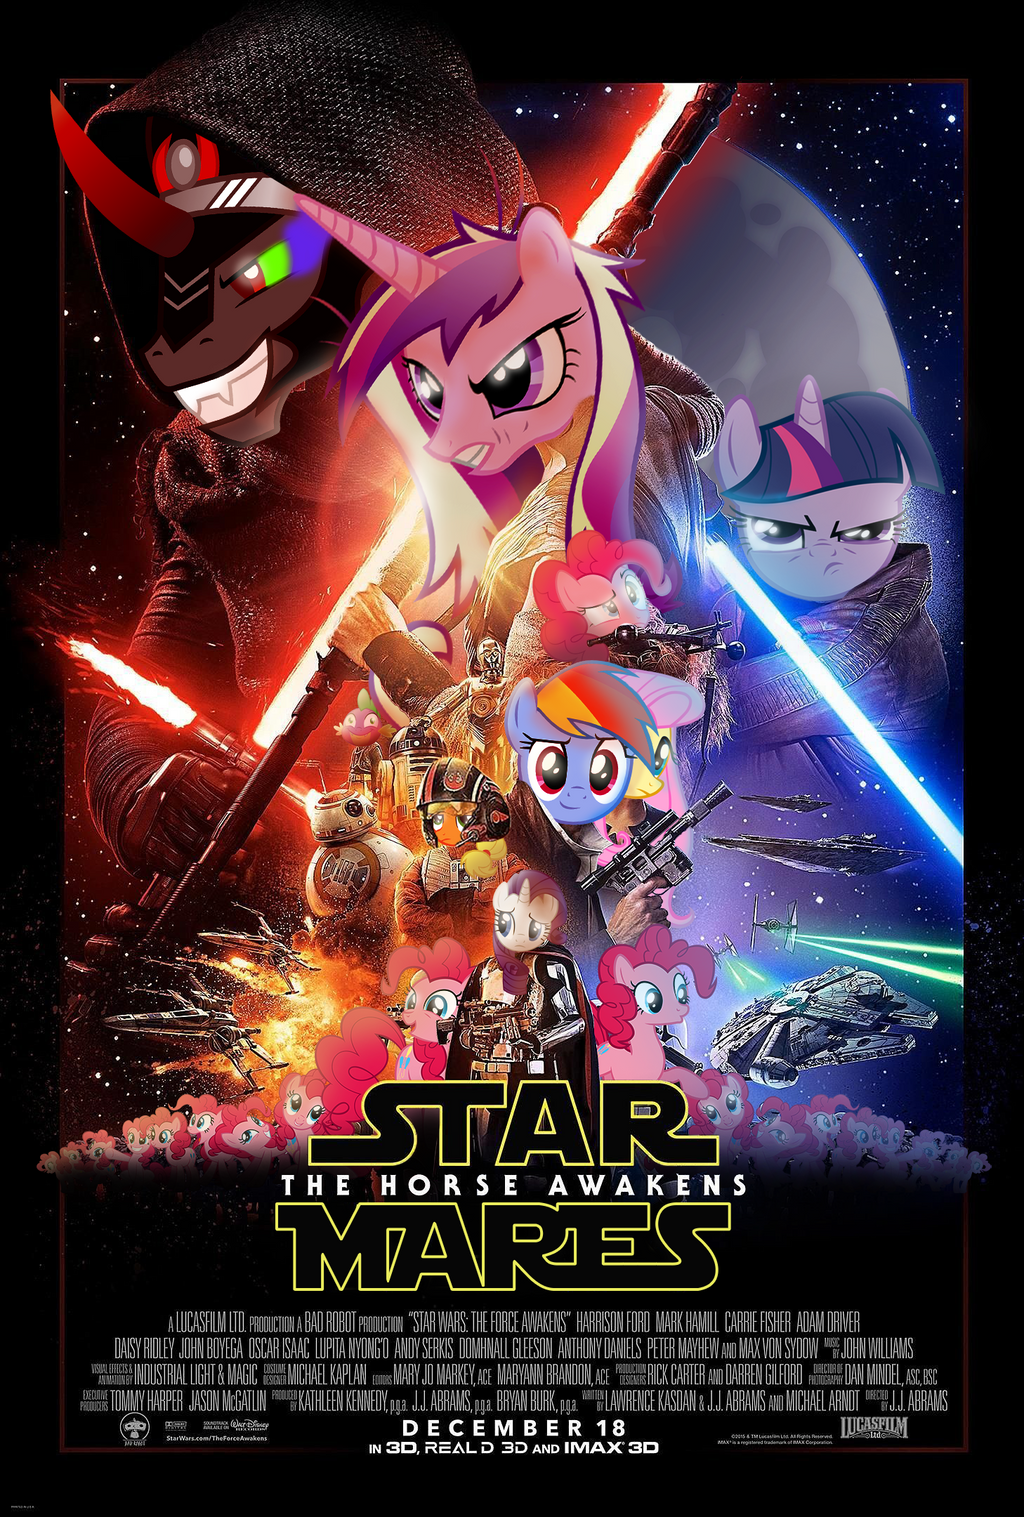 Star Mares The Horse Awakens By Chipbiscuit On Deviantart